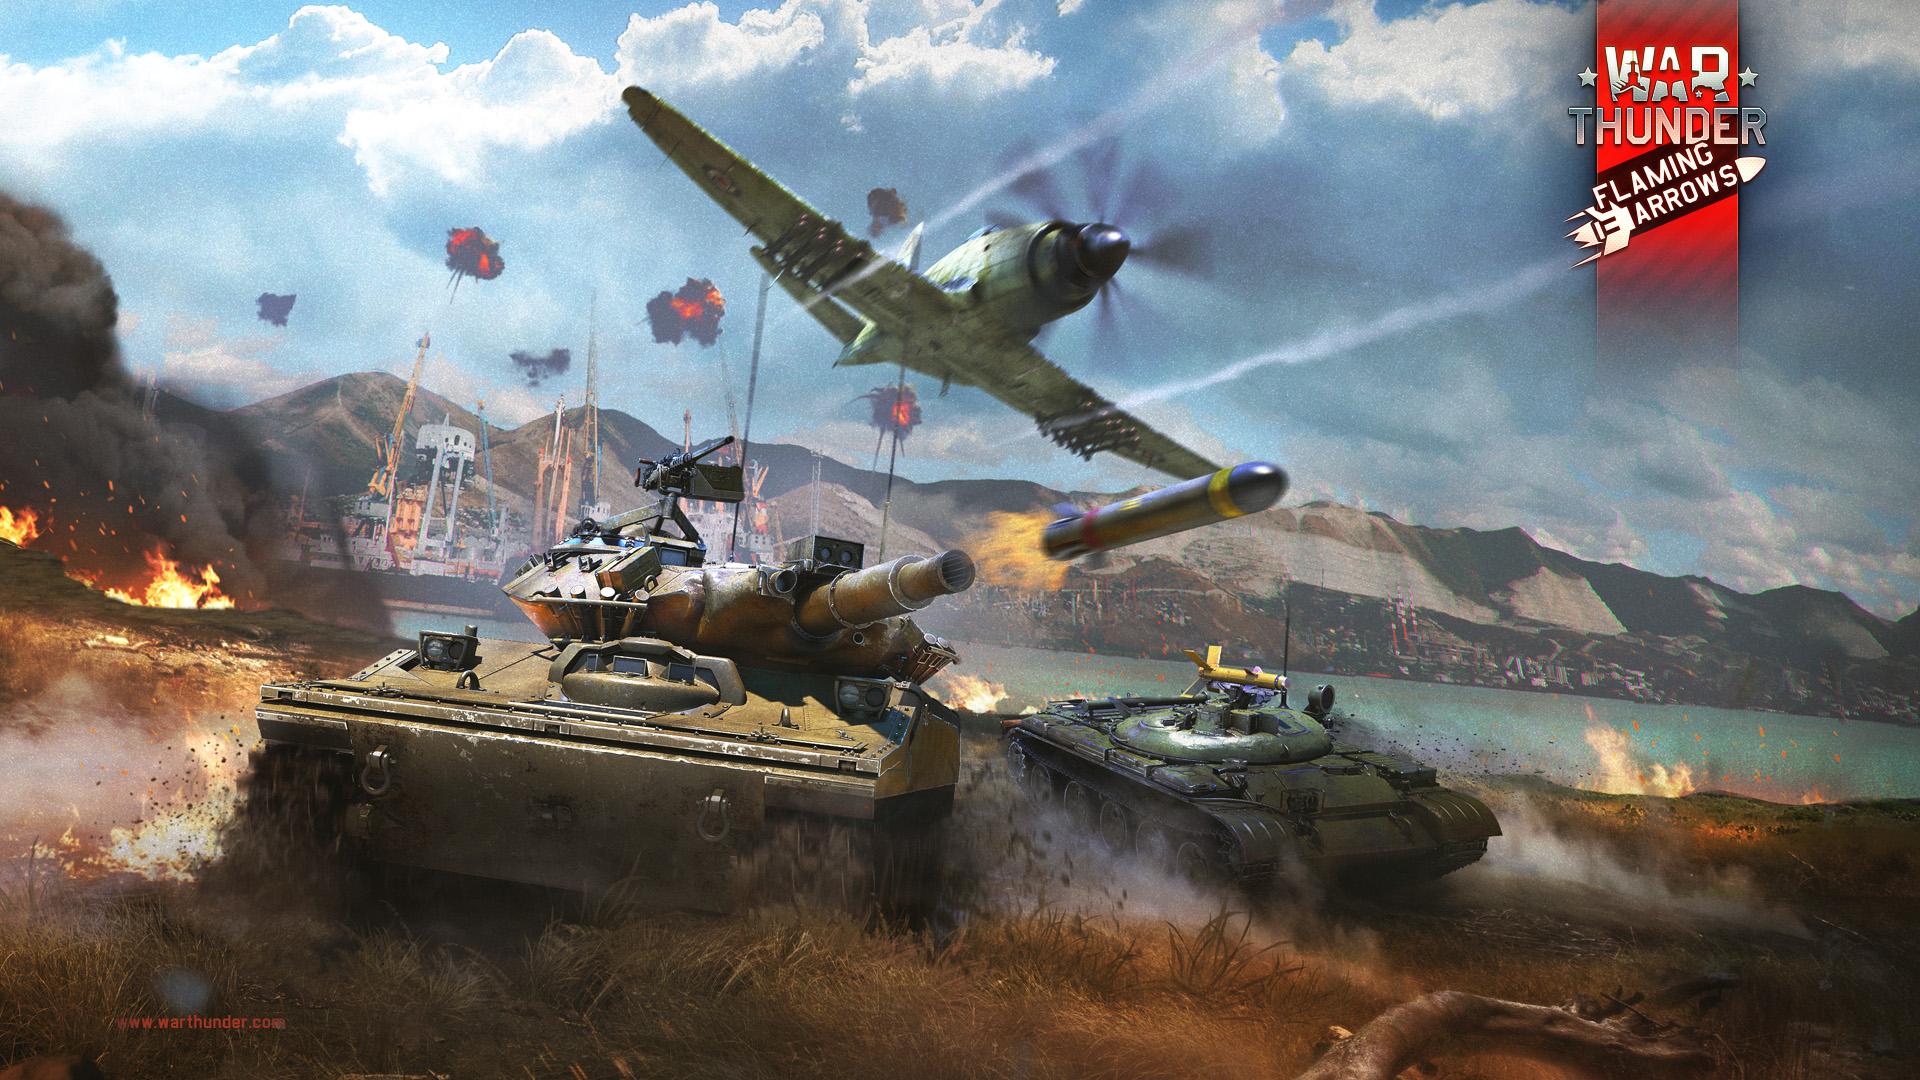 WarThunder confirmed launch on Xbox One